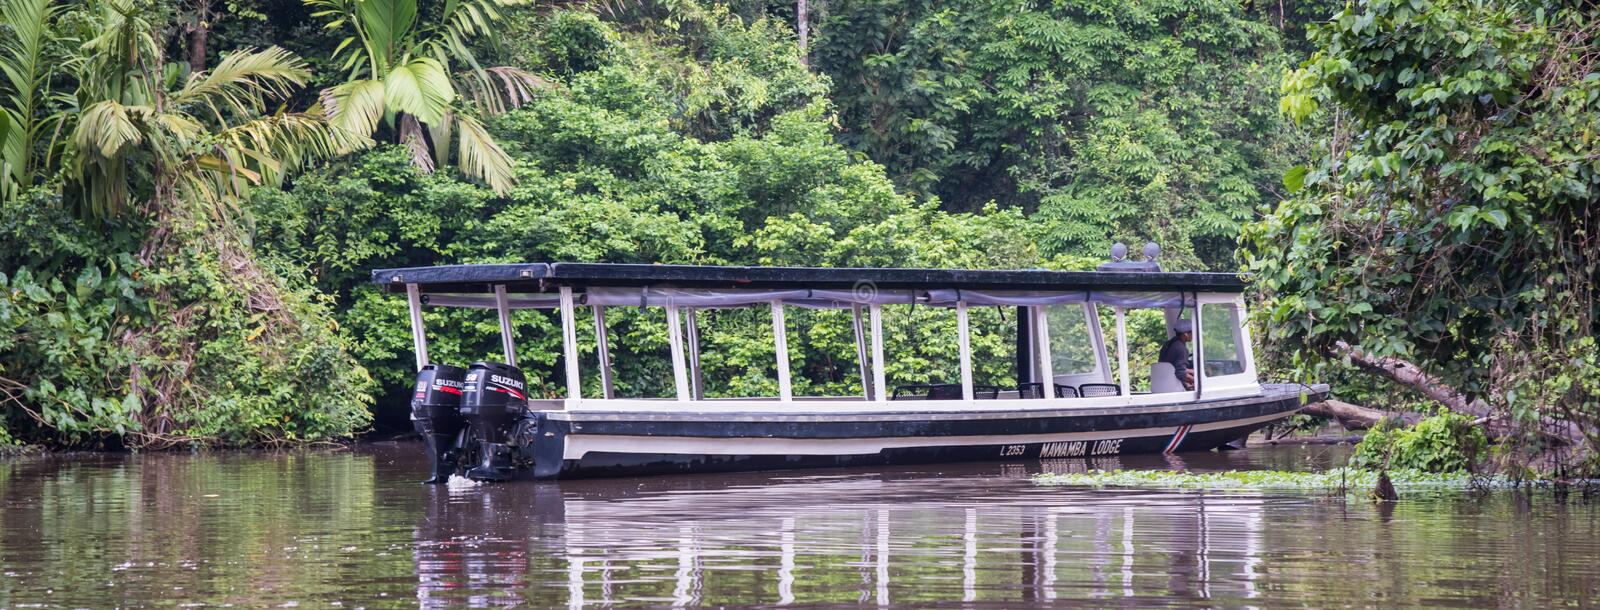 A Boat in Tortuguero National Park stock image